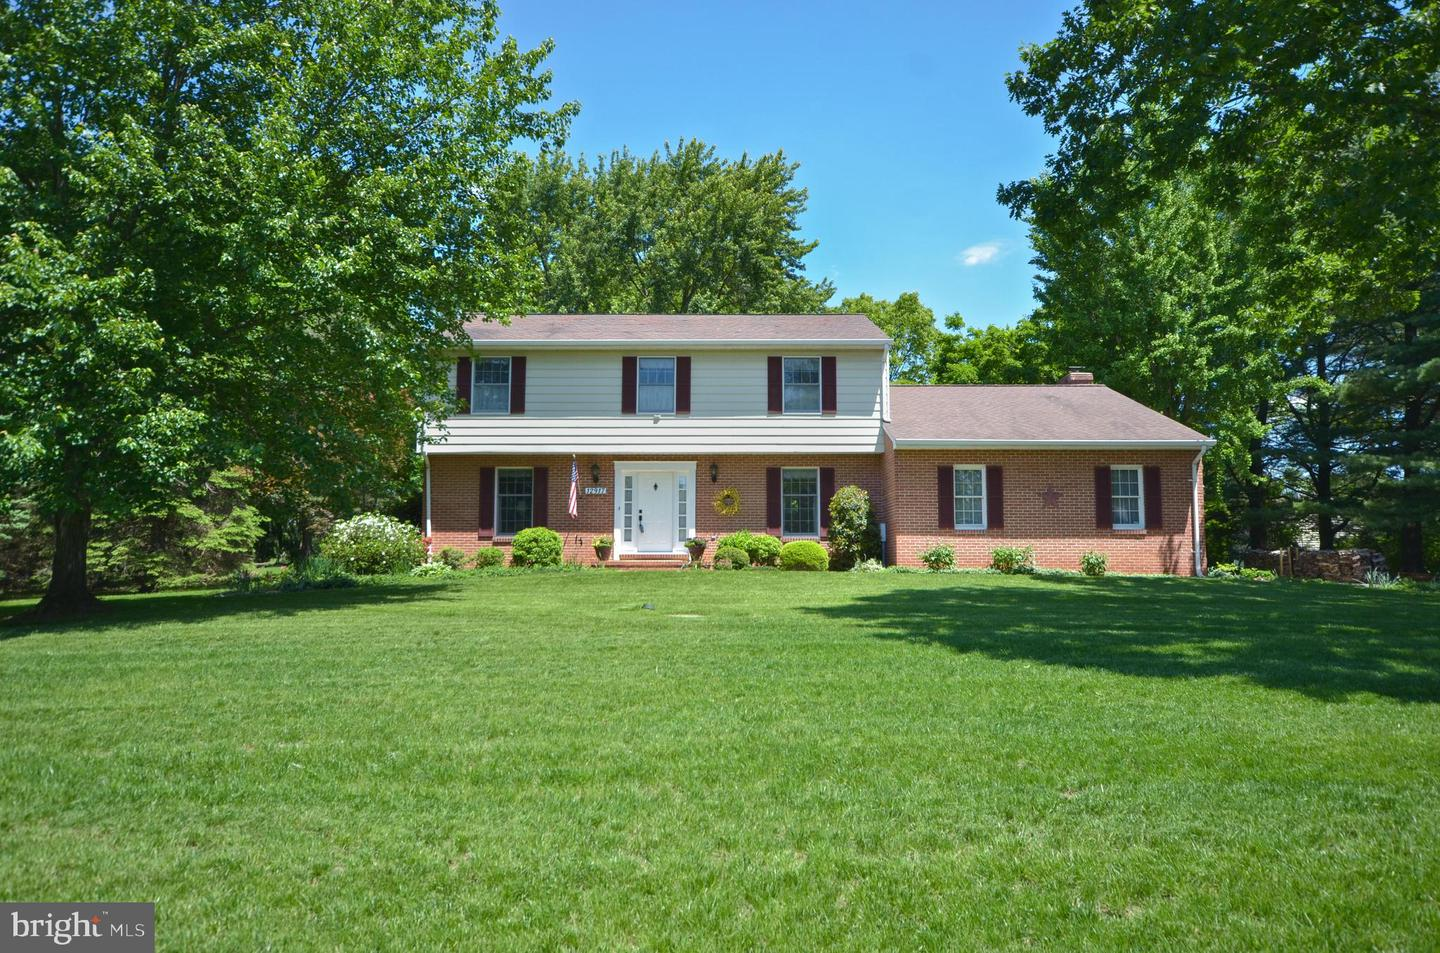 12917 GENT ROAD, REISTERSTOWN, Maryland